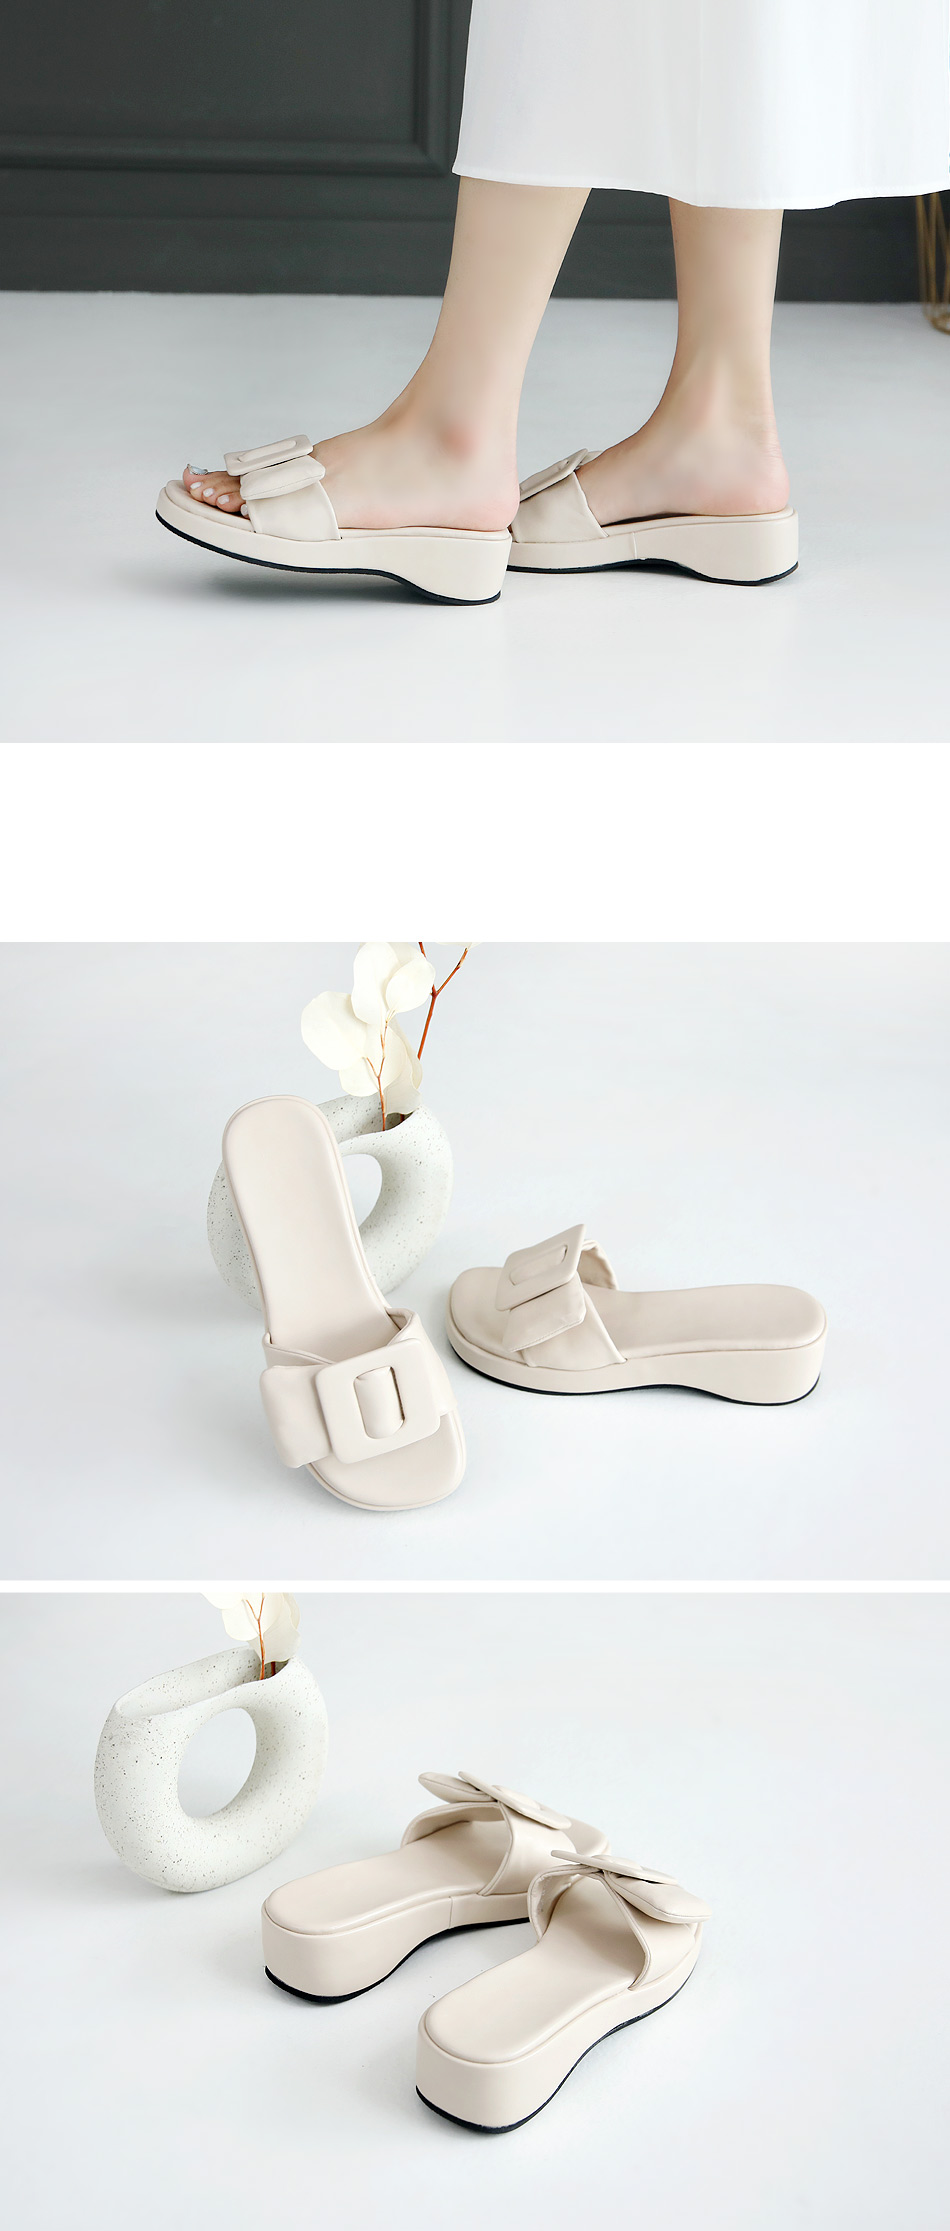 Louped thick soled slippers 4 cm